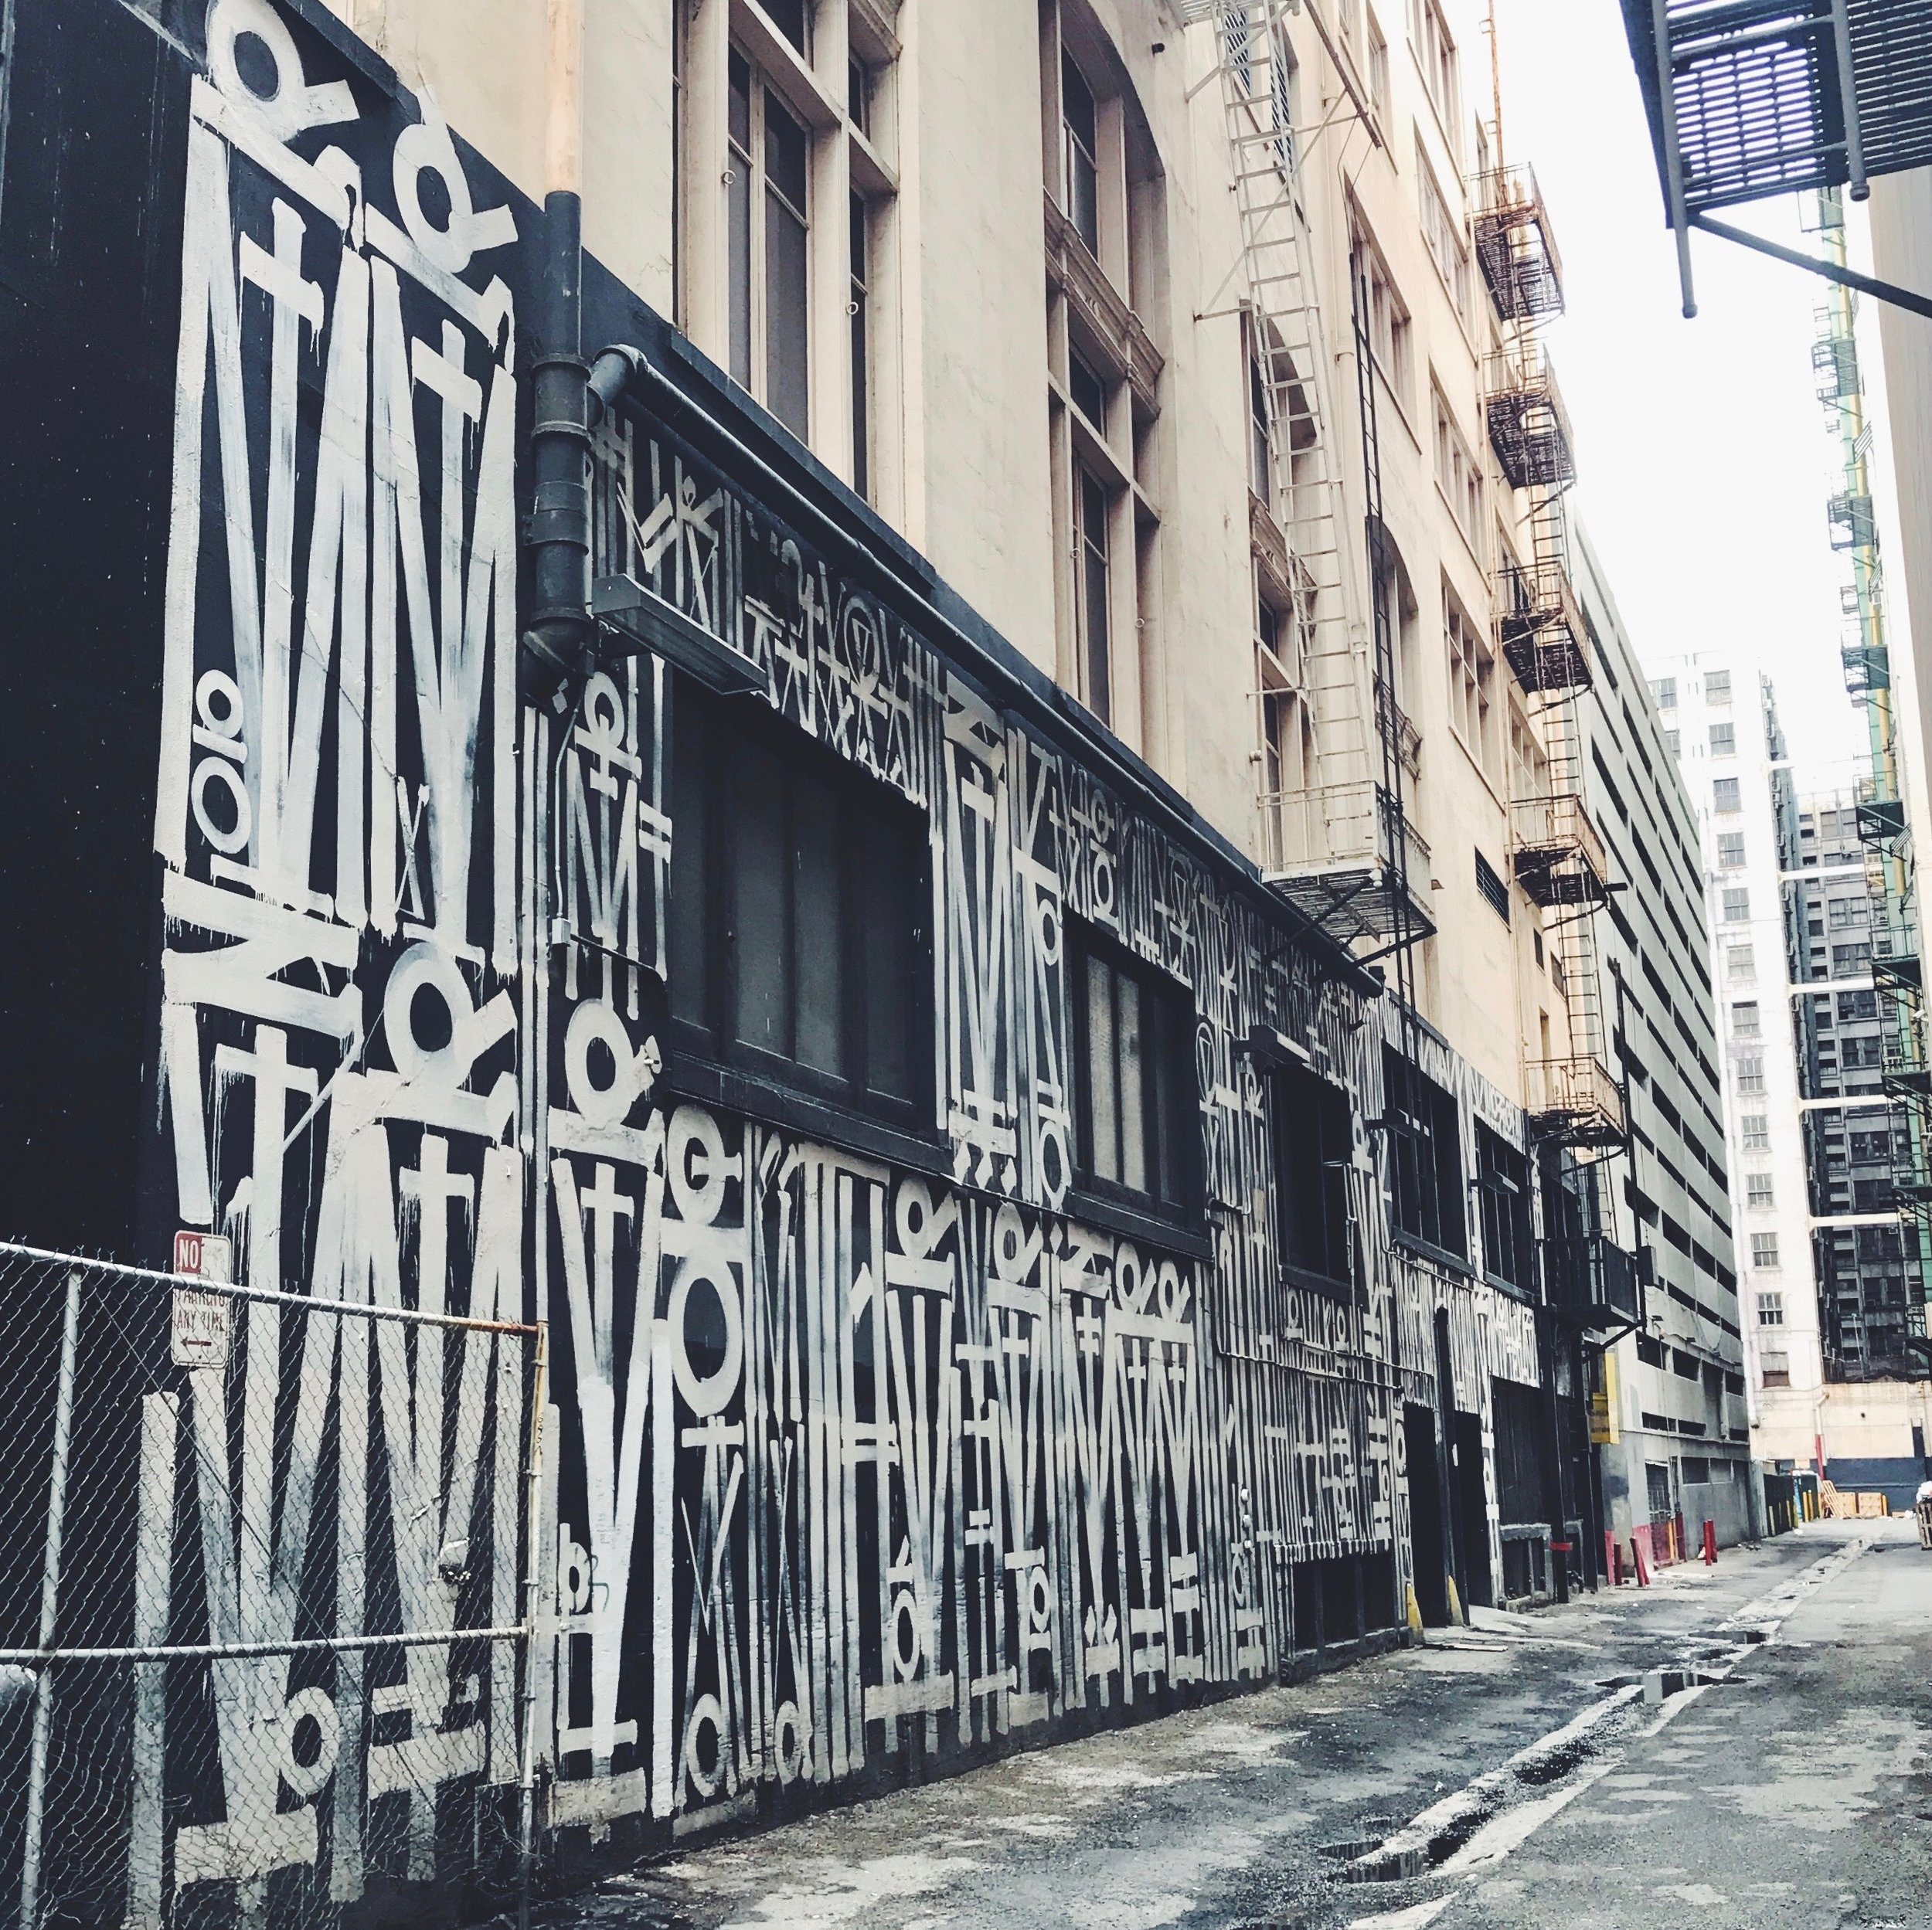 Retna in an alley way